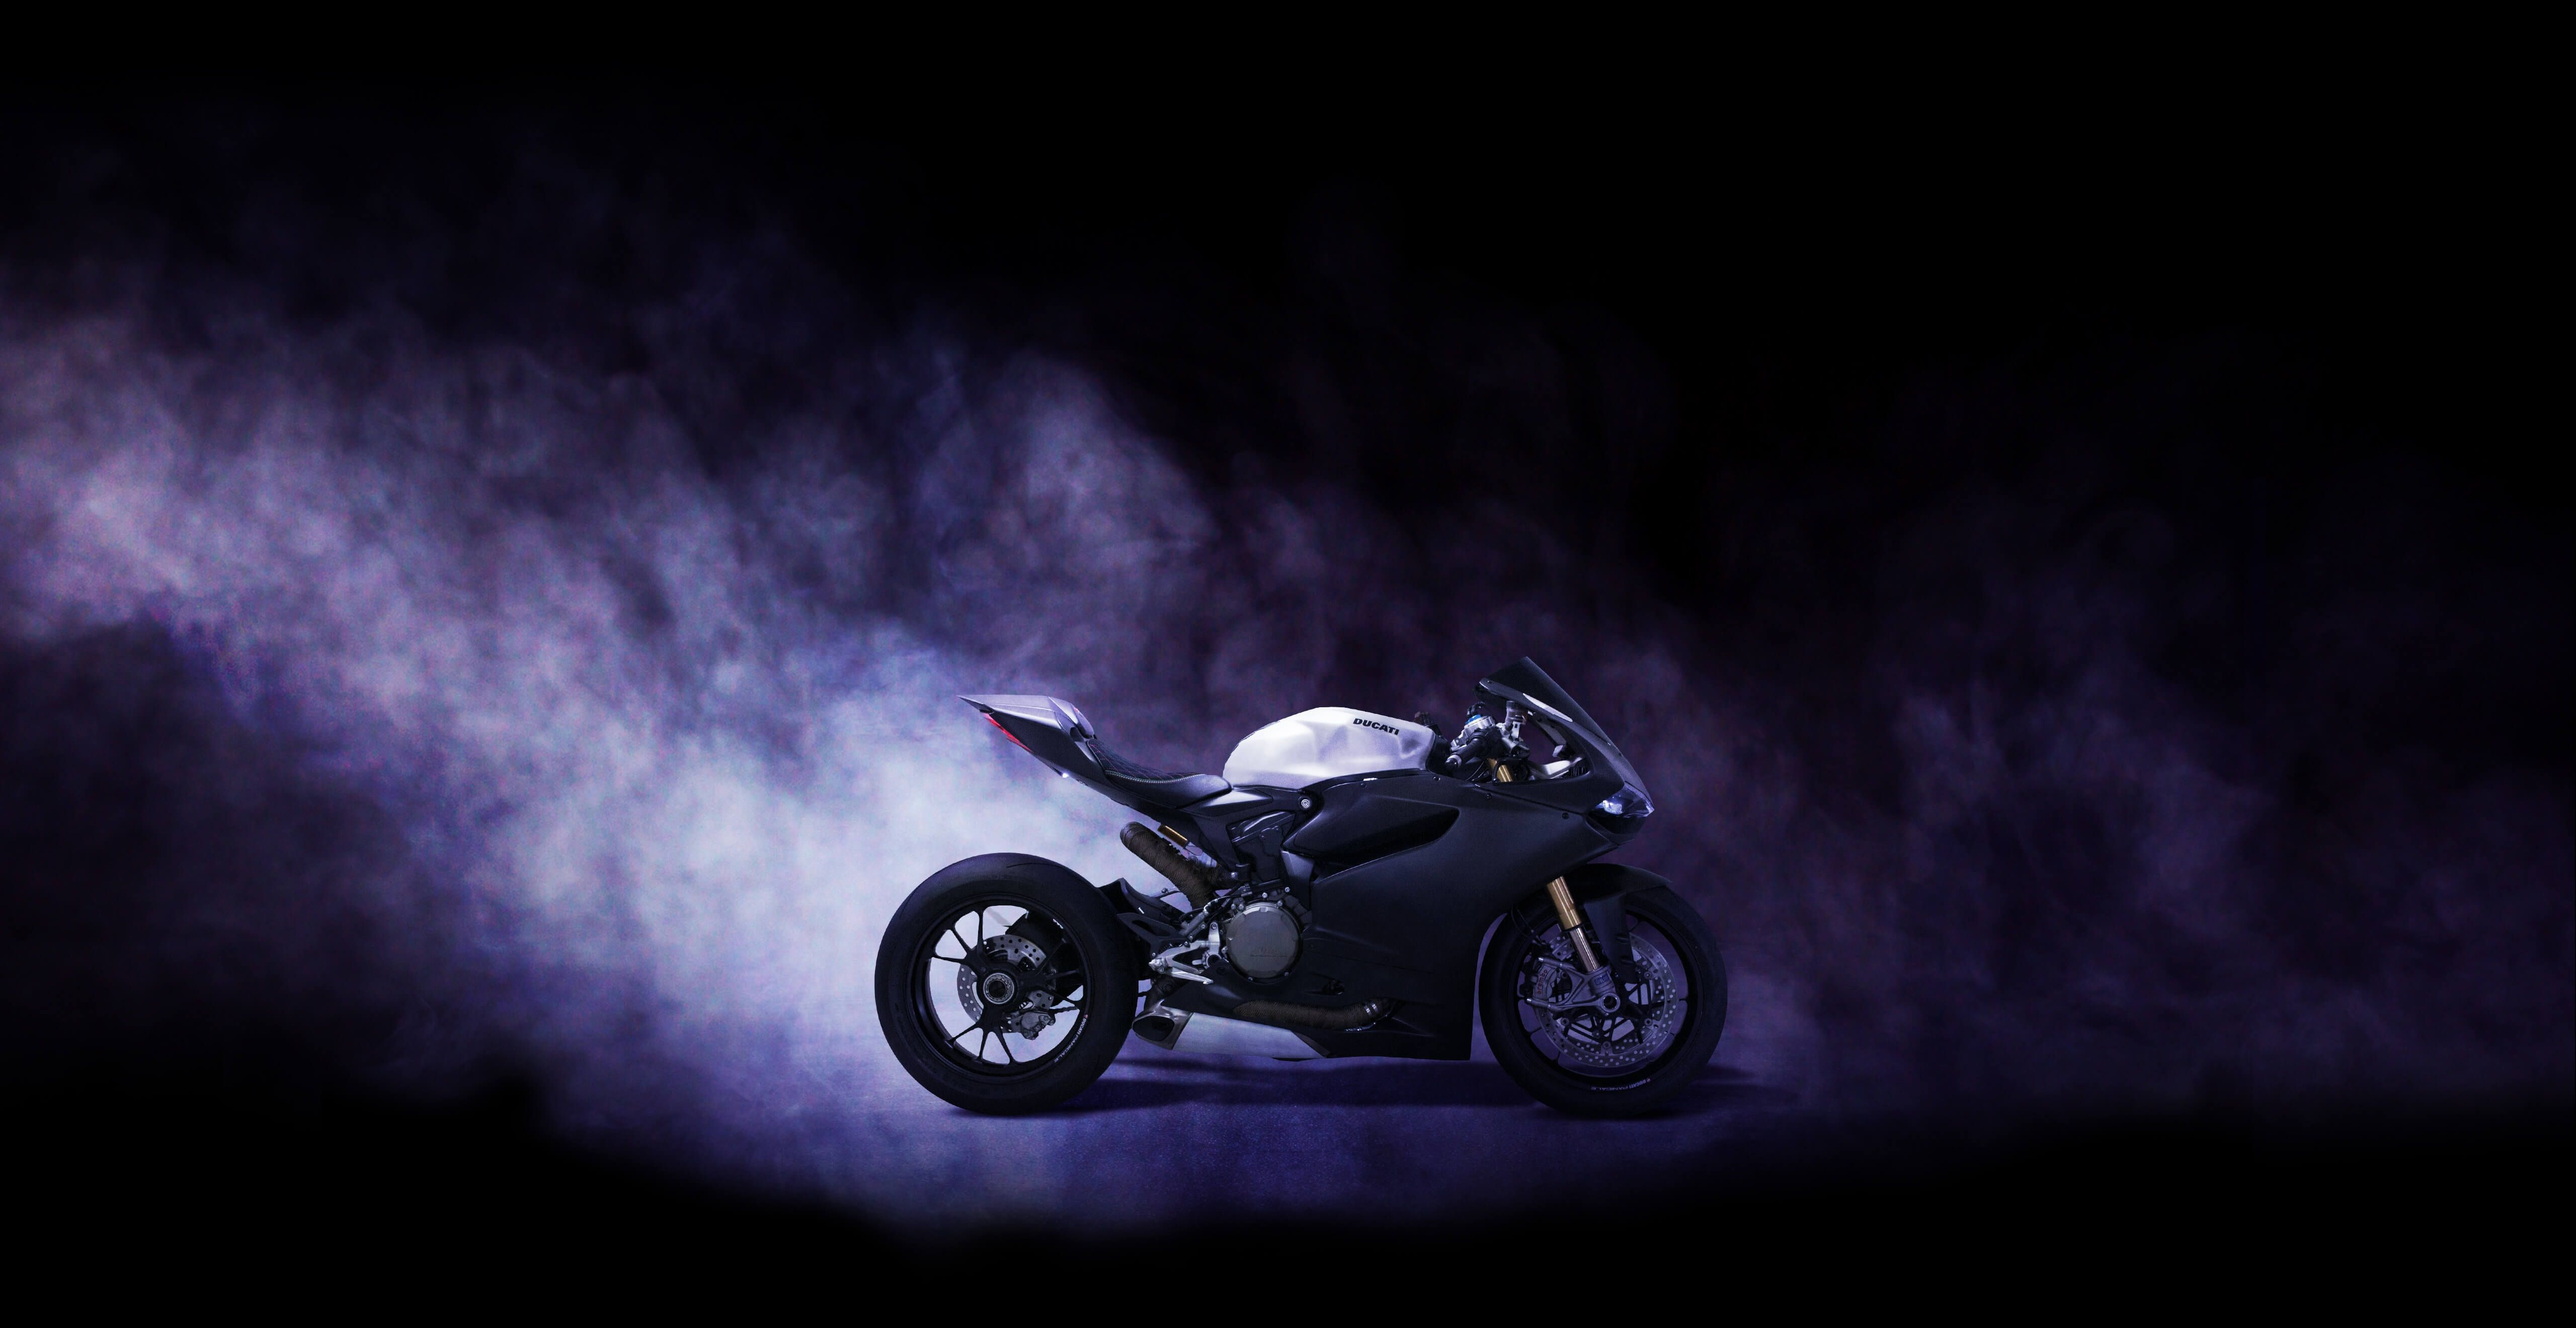 Hots Free Nude Motorcycle Wallpaper Images